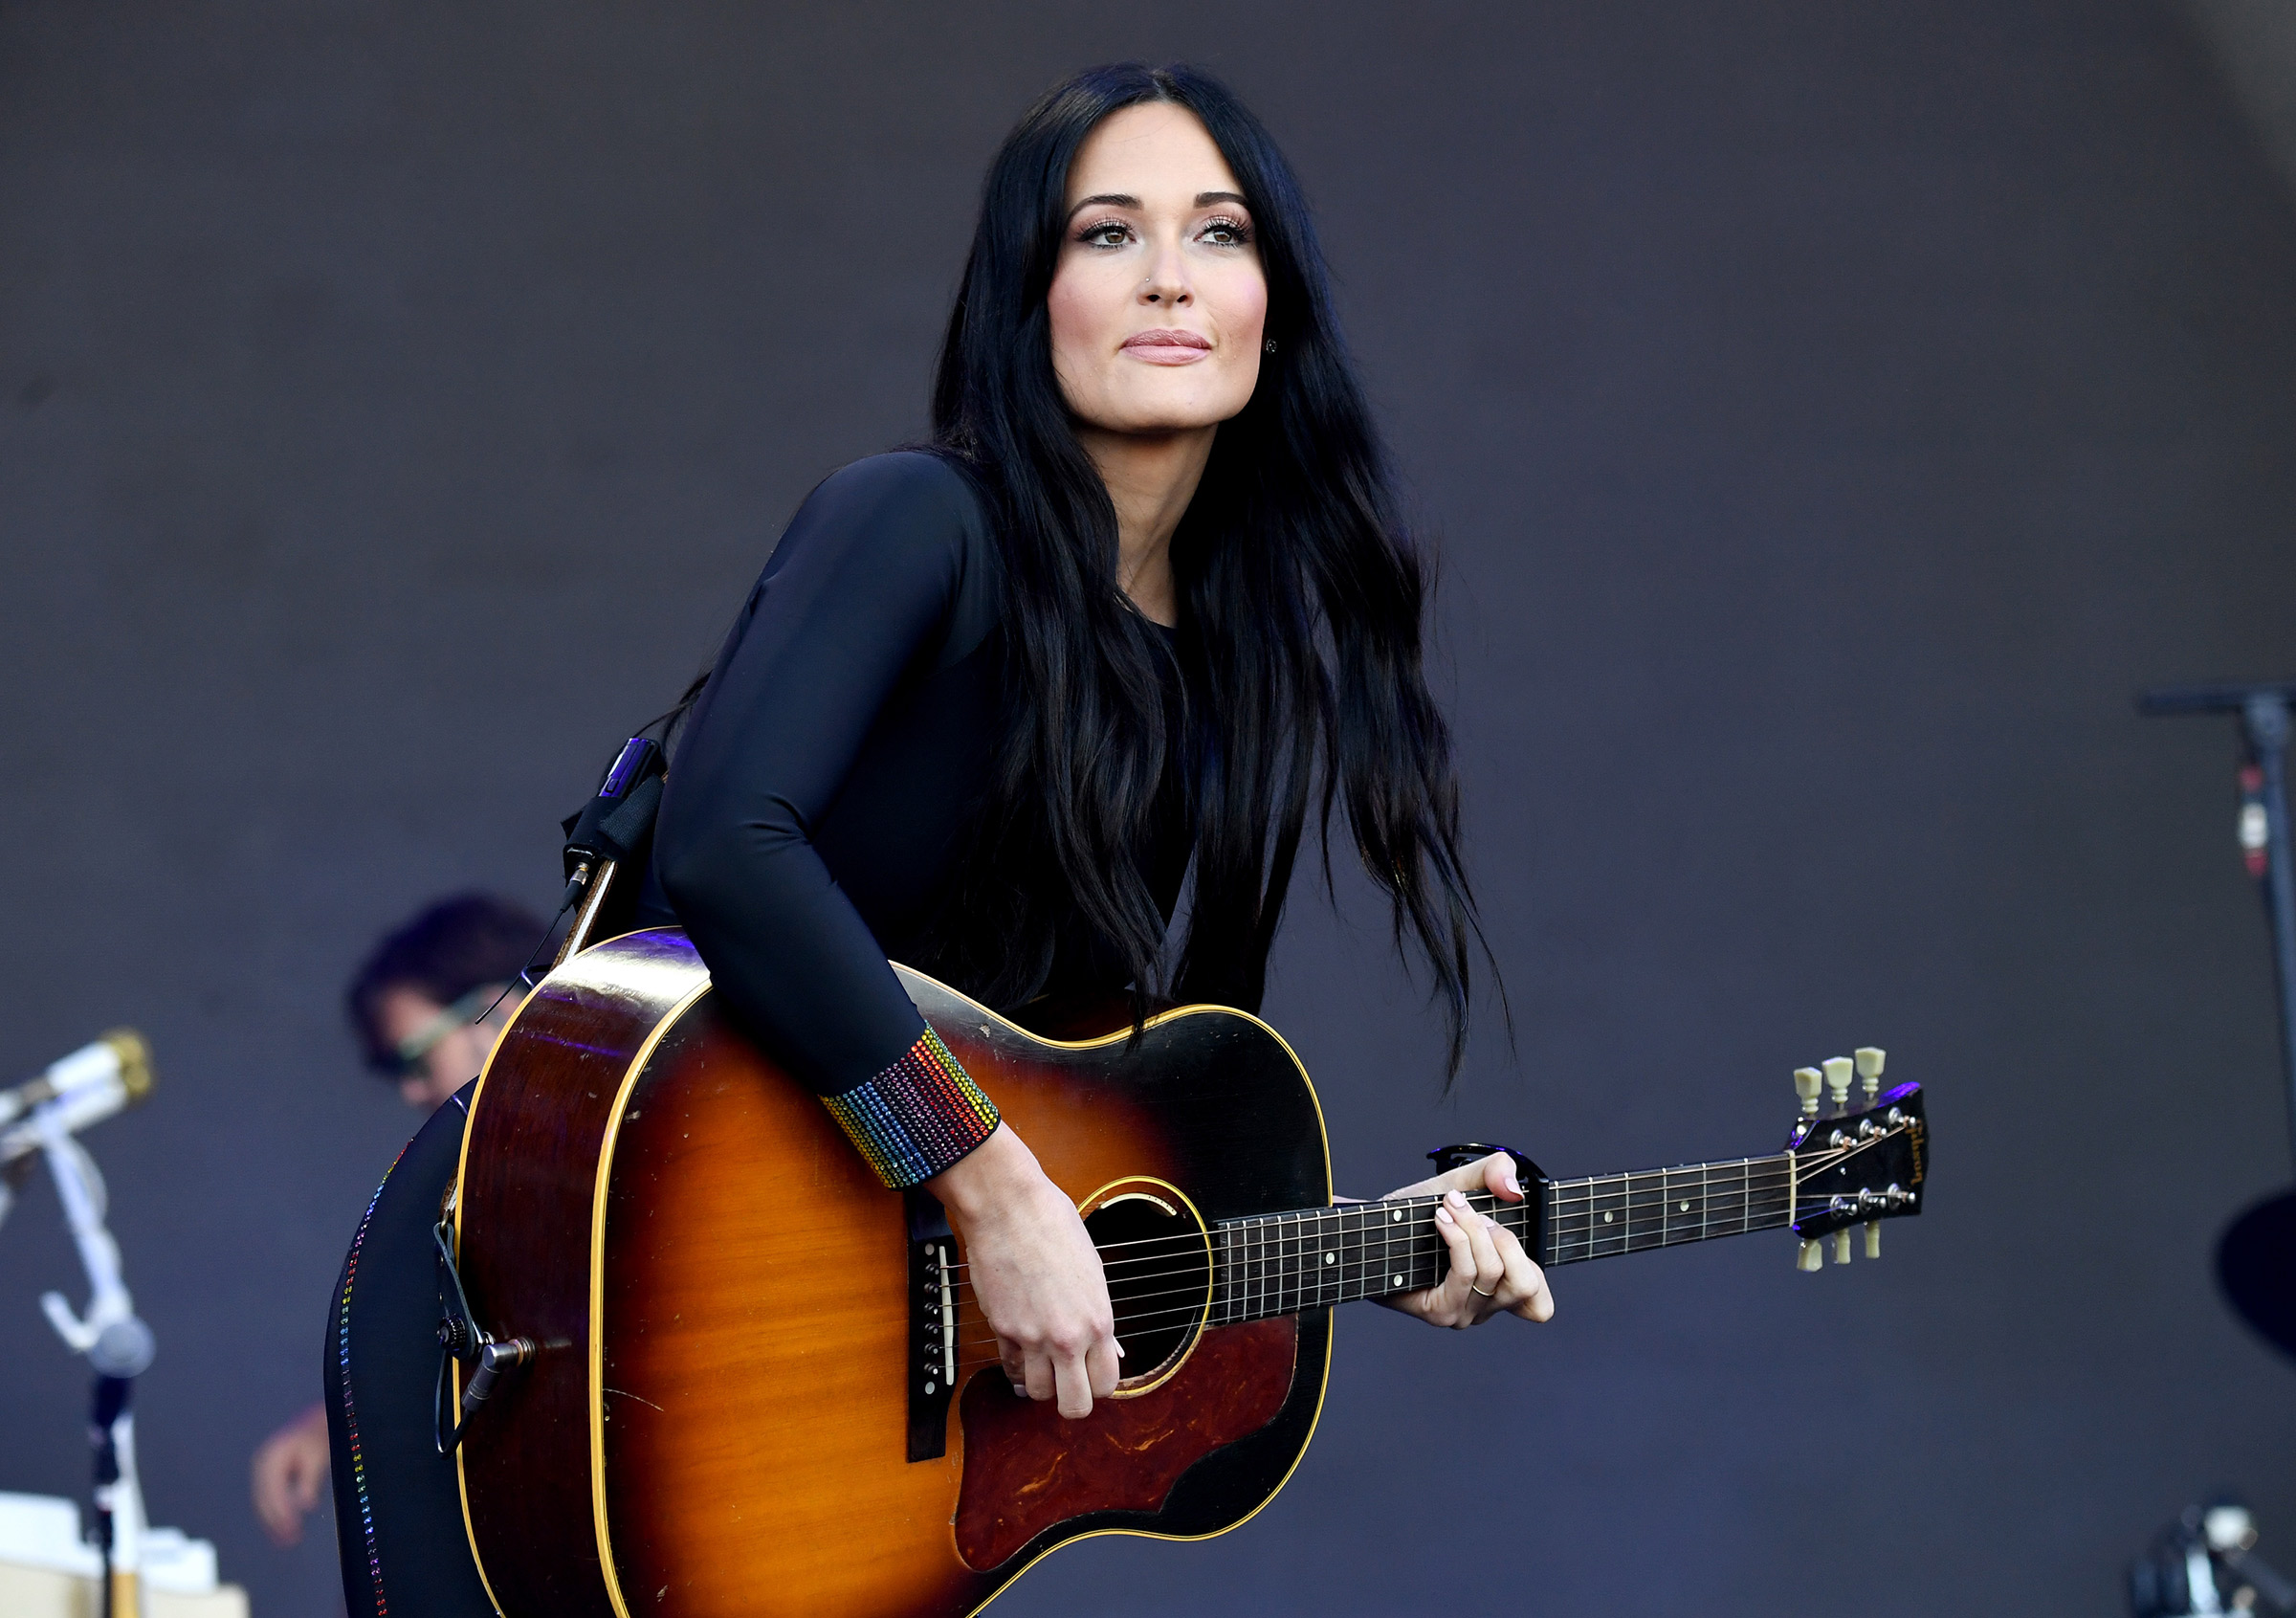 The winner of the 2019 Album of the Year Grammy Award, Musgraves has built a following without the aid of mainstream radio.